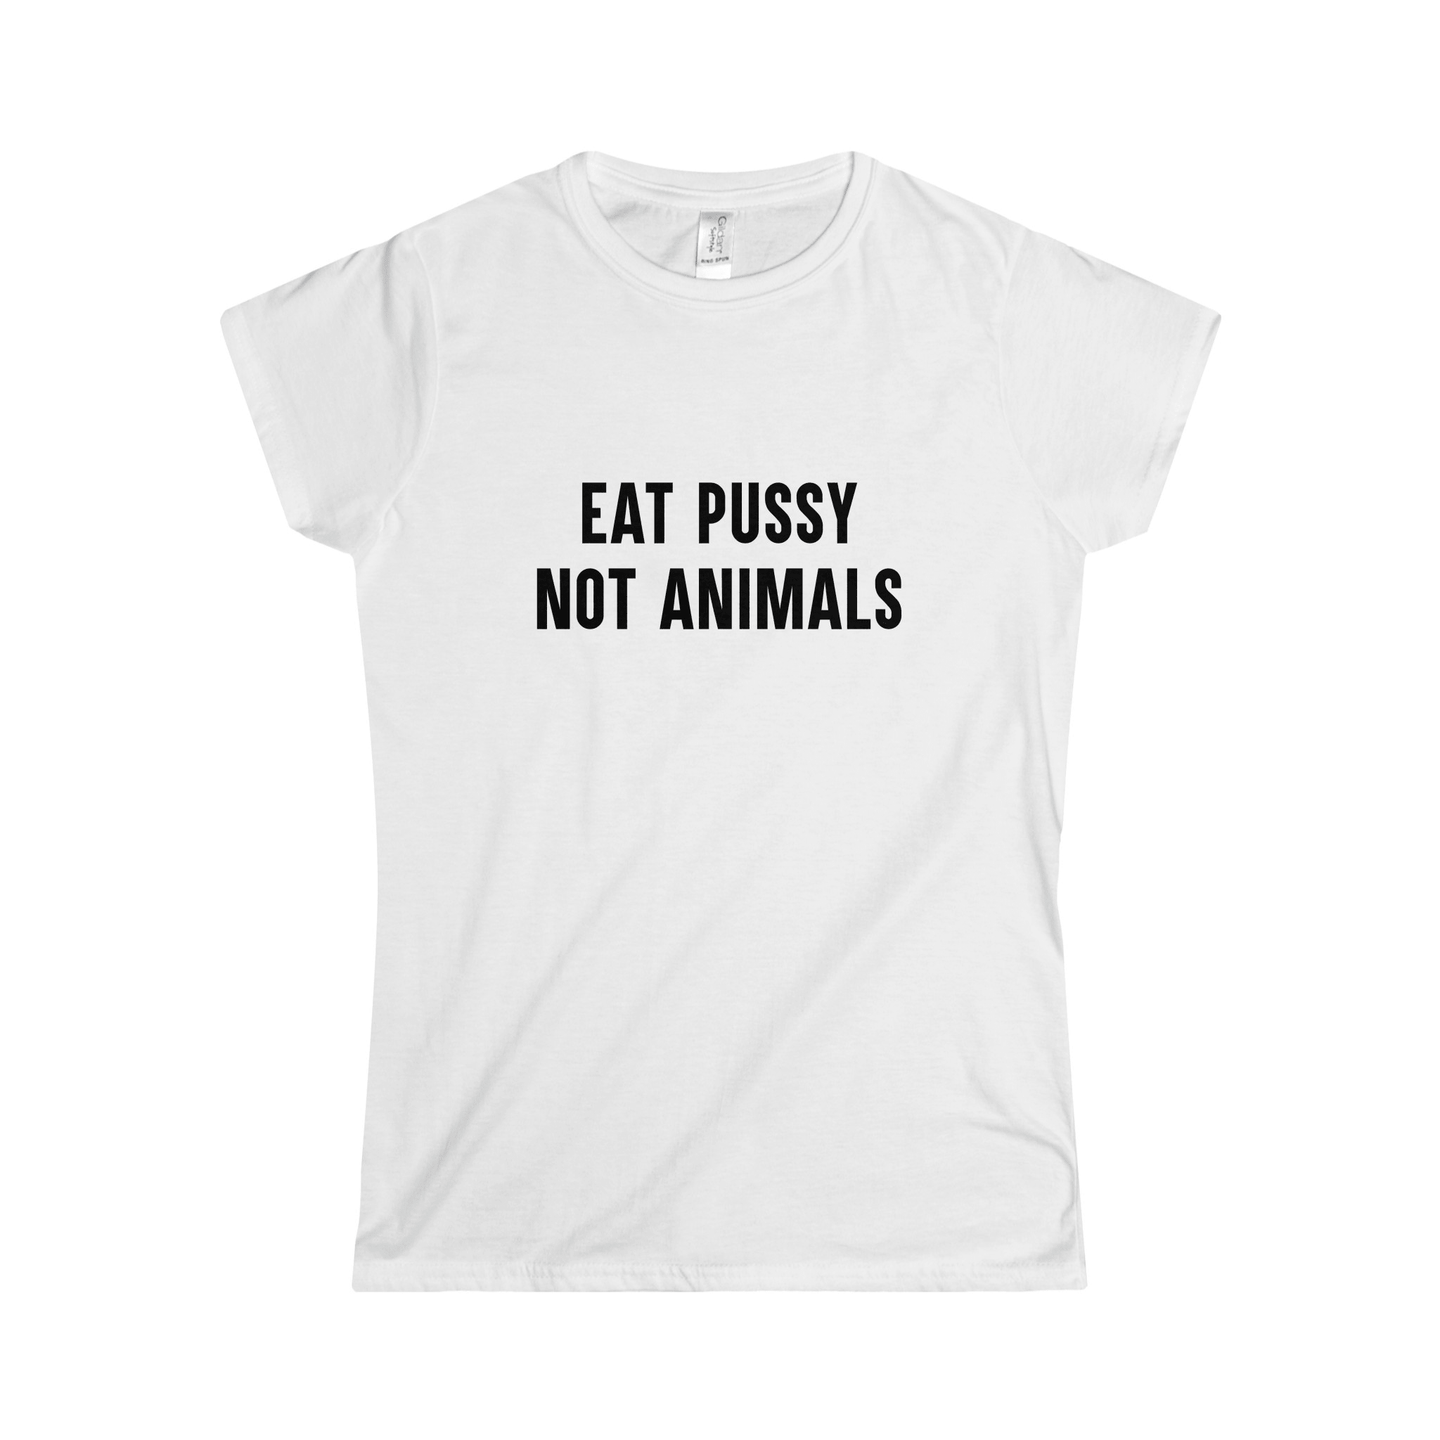 eat-pussy-not-animals-vegan-tshirt-women-white.png